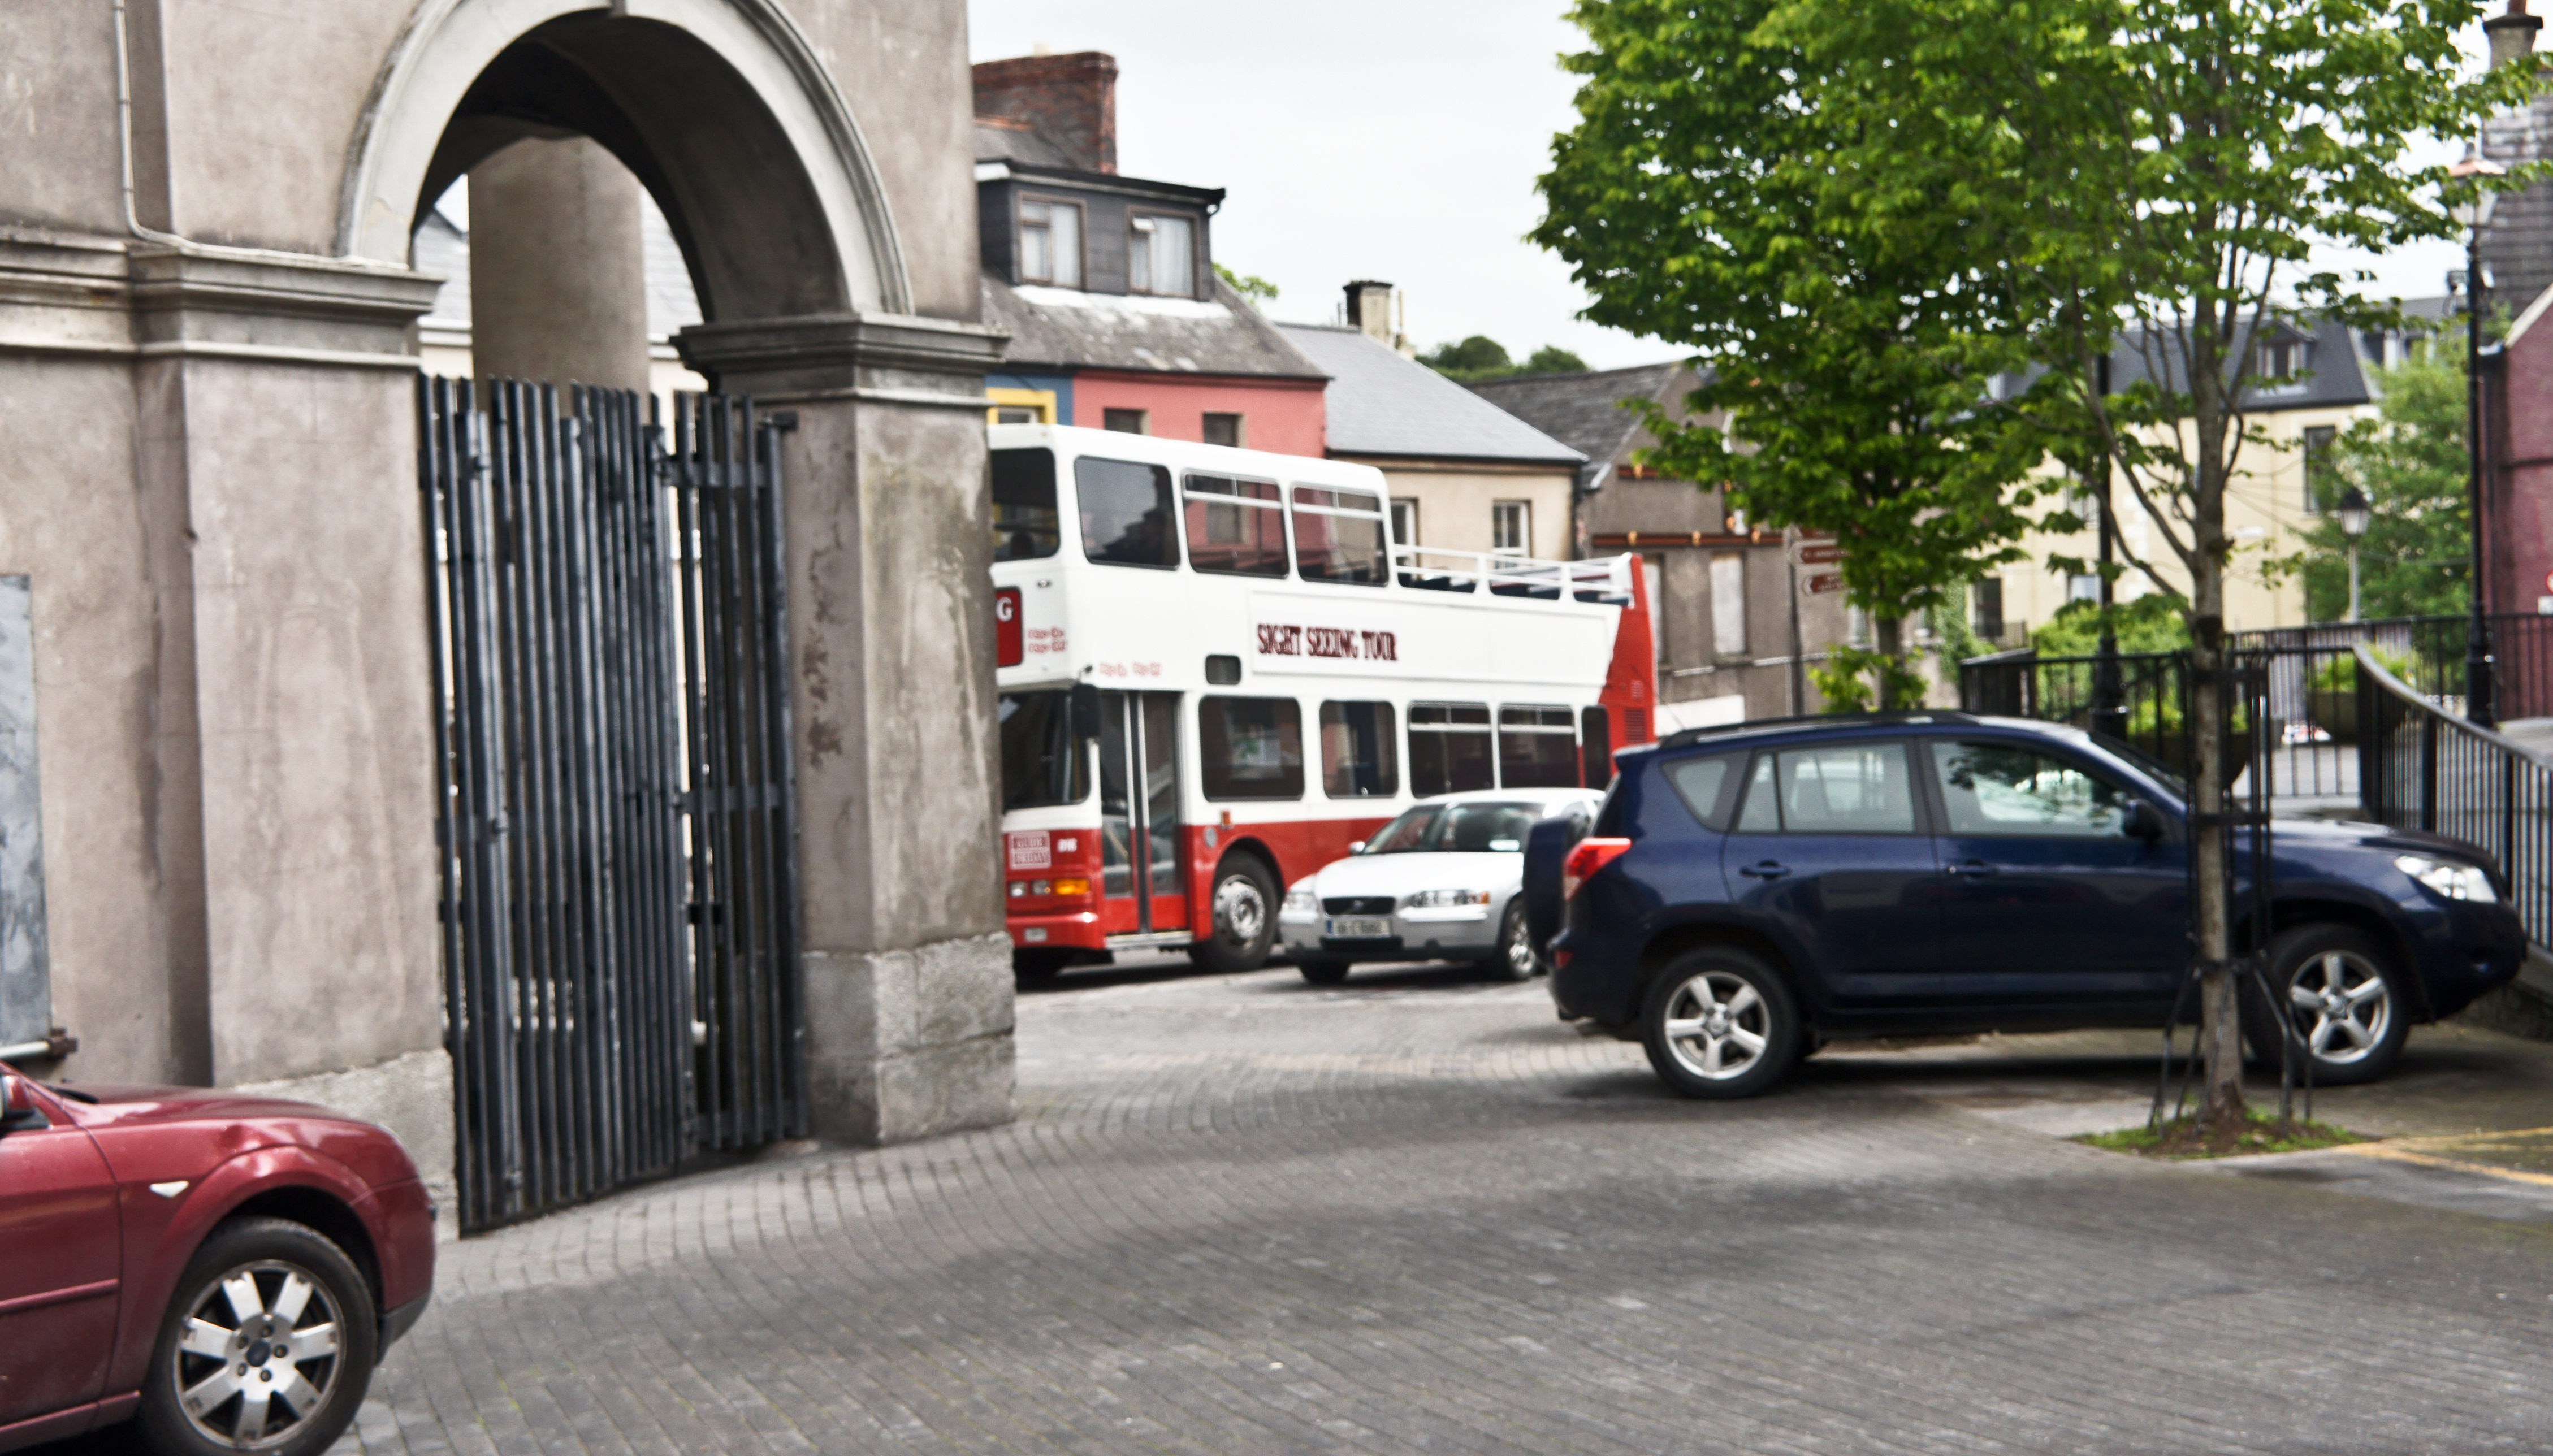 The Shandon area of Cork City; the Firkin Crane is a permanent base for Cork City Ballet, Crux Dance Theatre and other dance activities